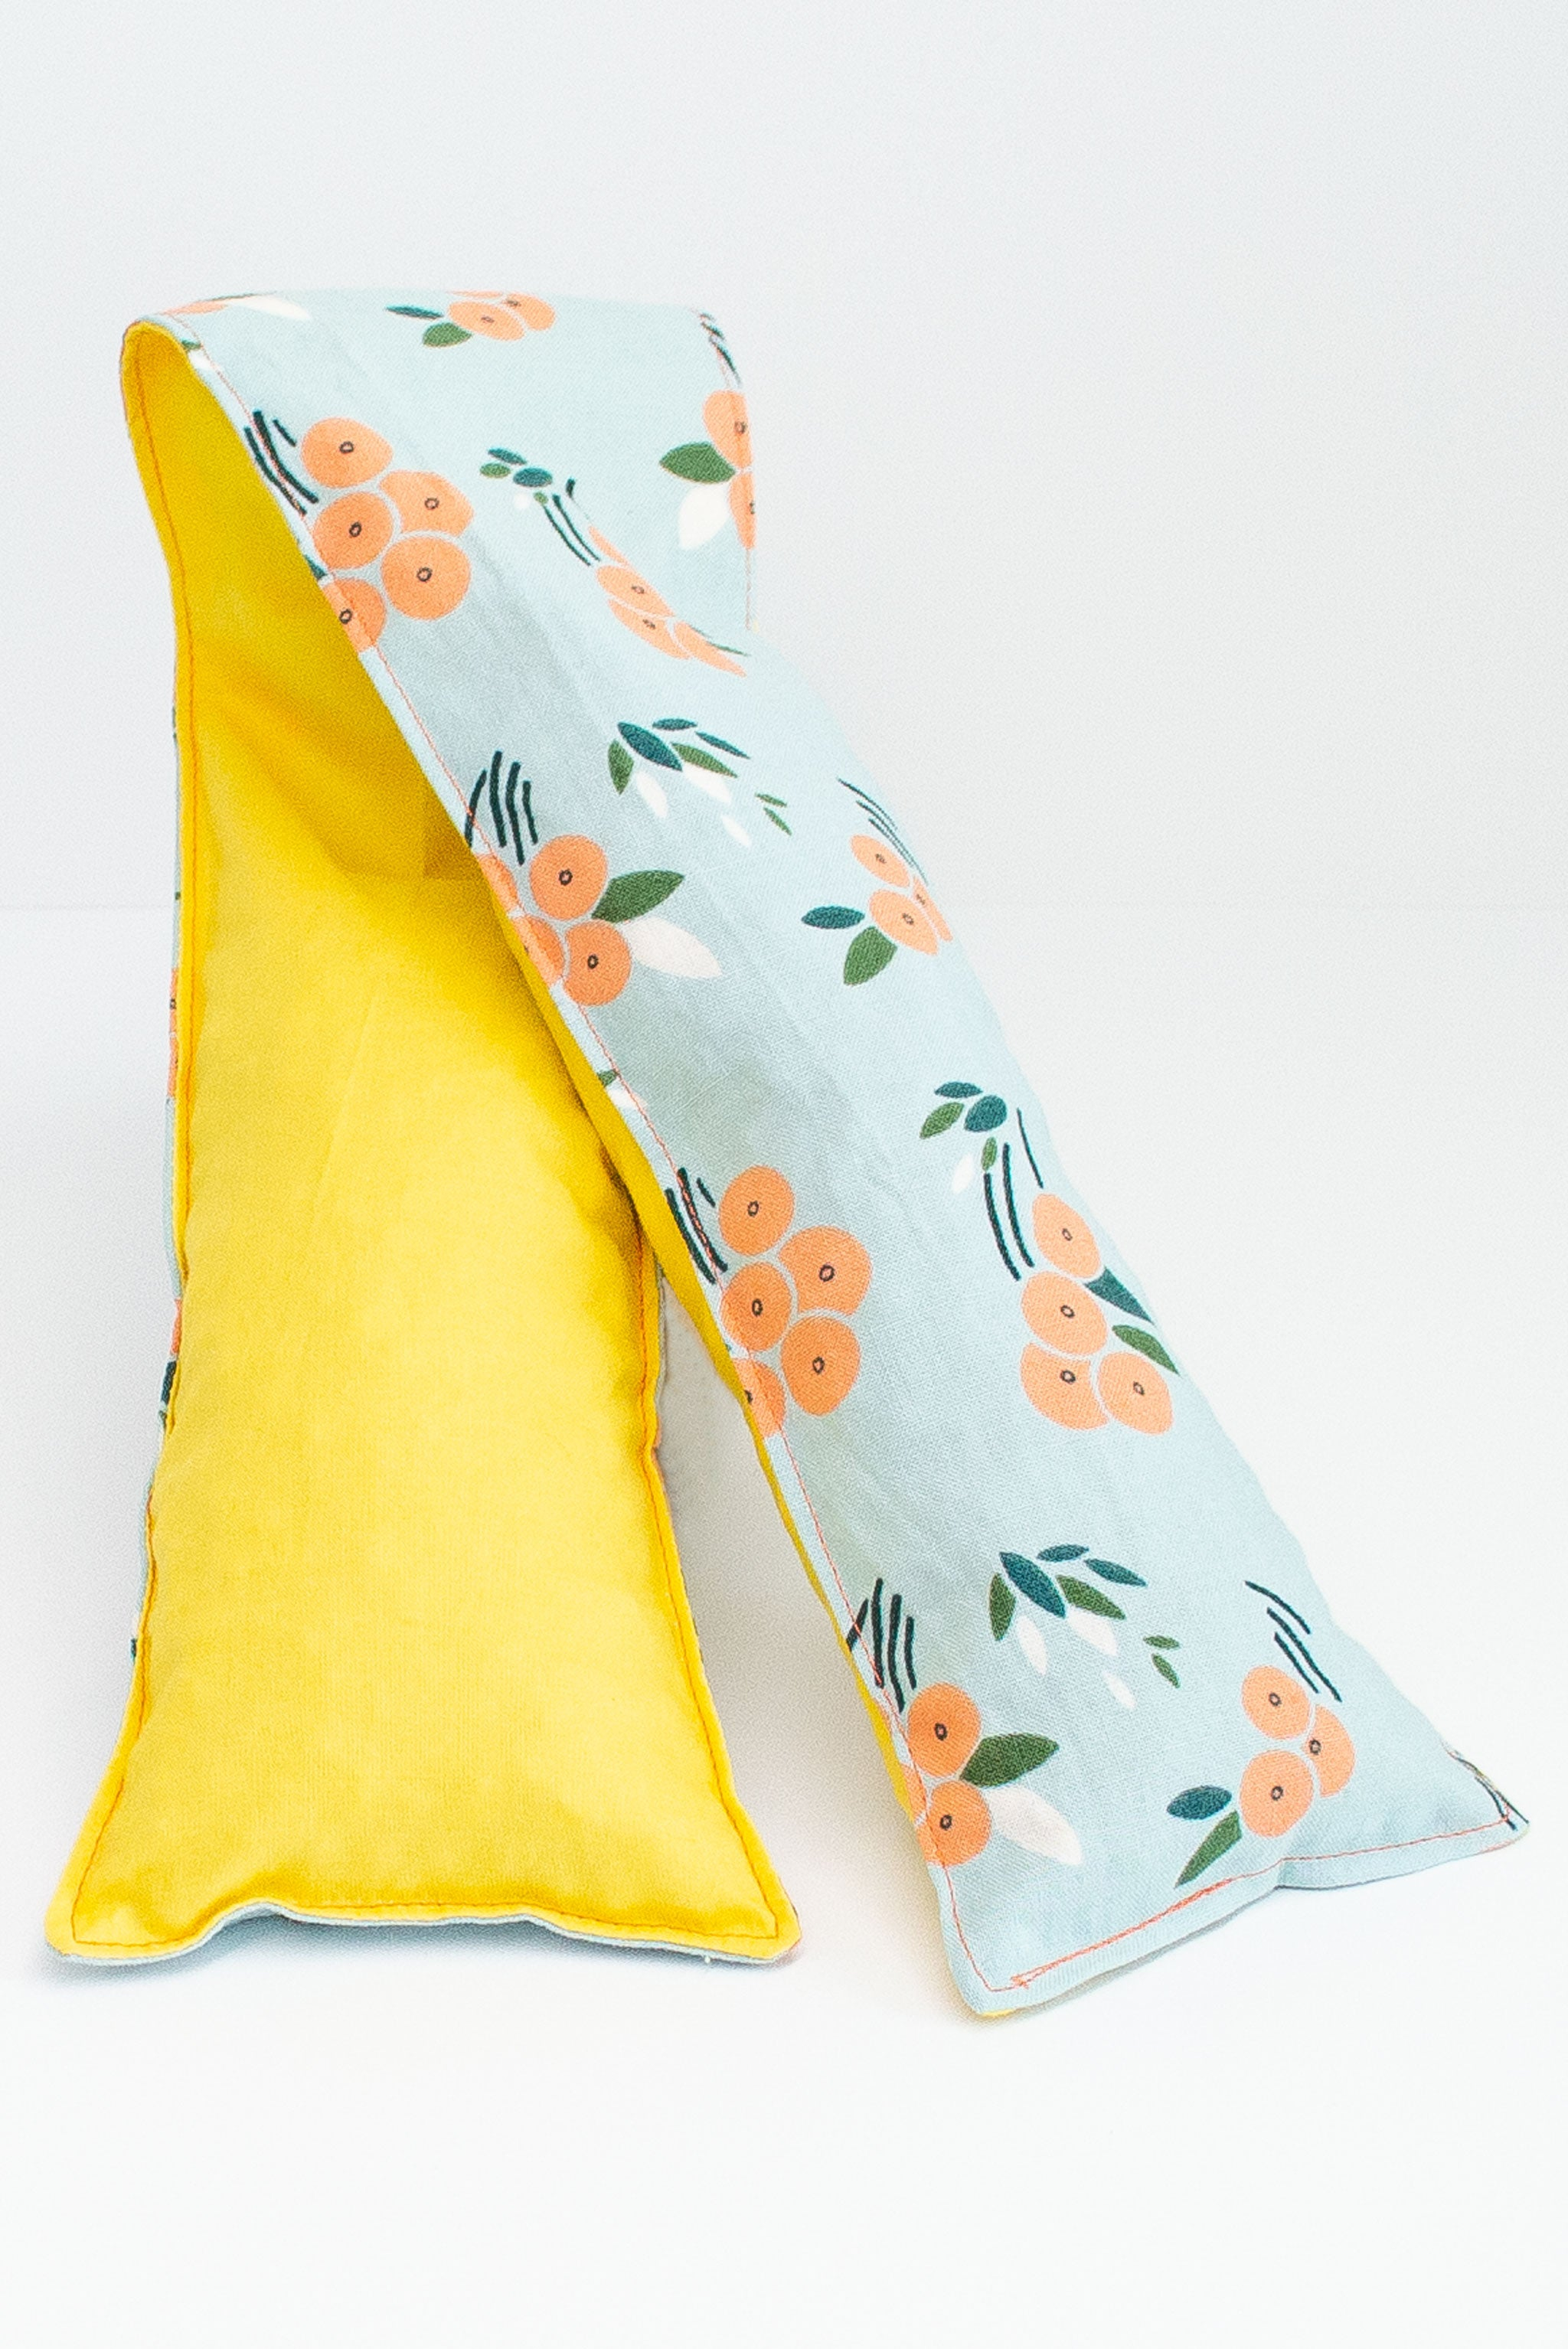 Long and skinny cherry pit grain bag on white background. Half yellow, half peach floral print on blue background.